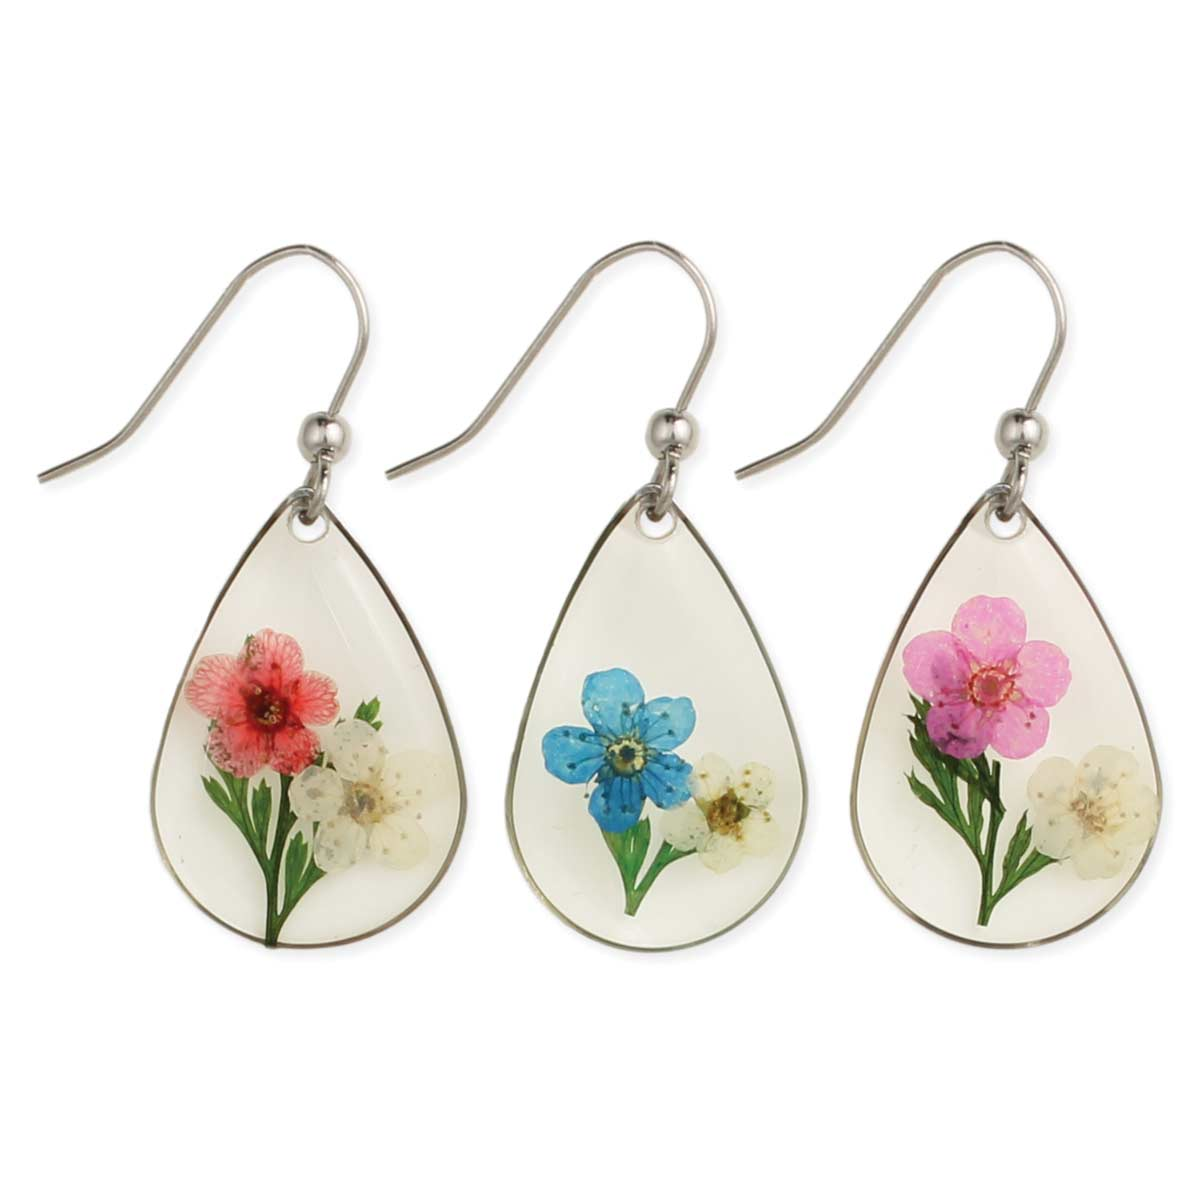 Secret Garden Pressed Flower Earrings